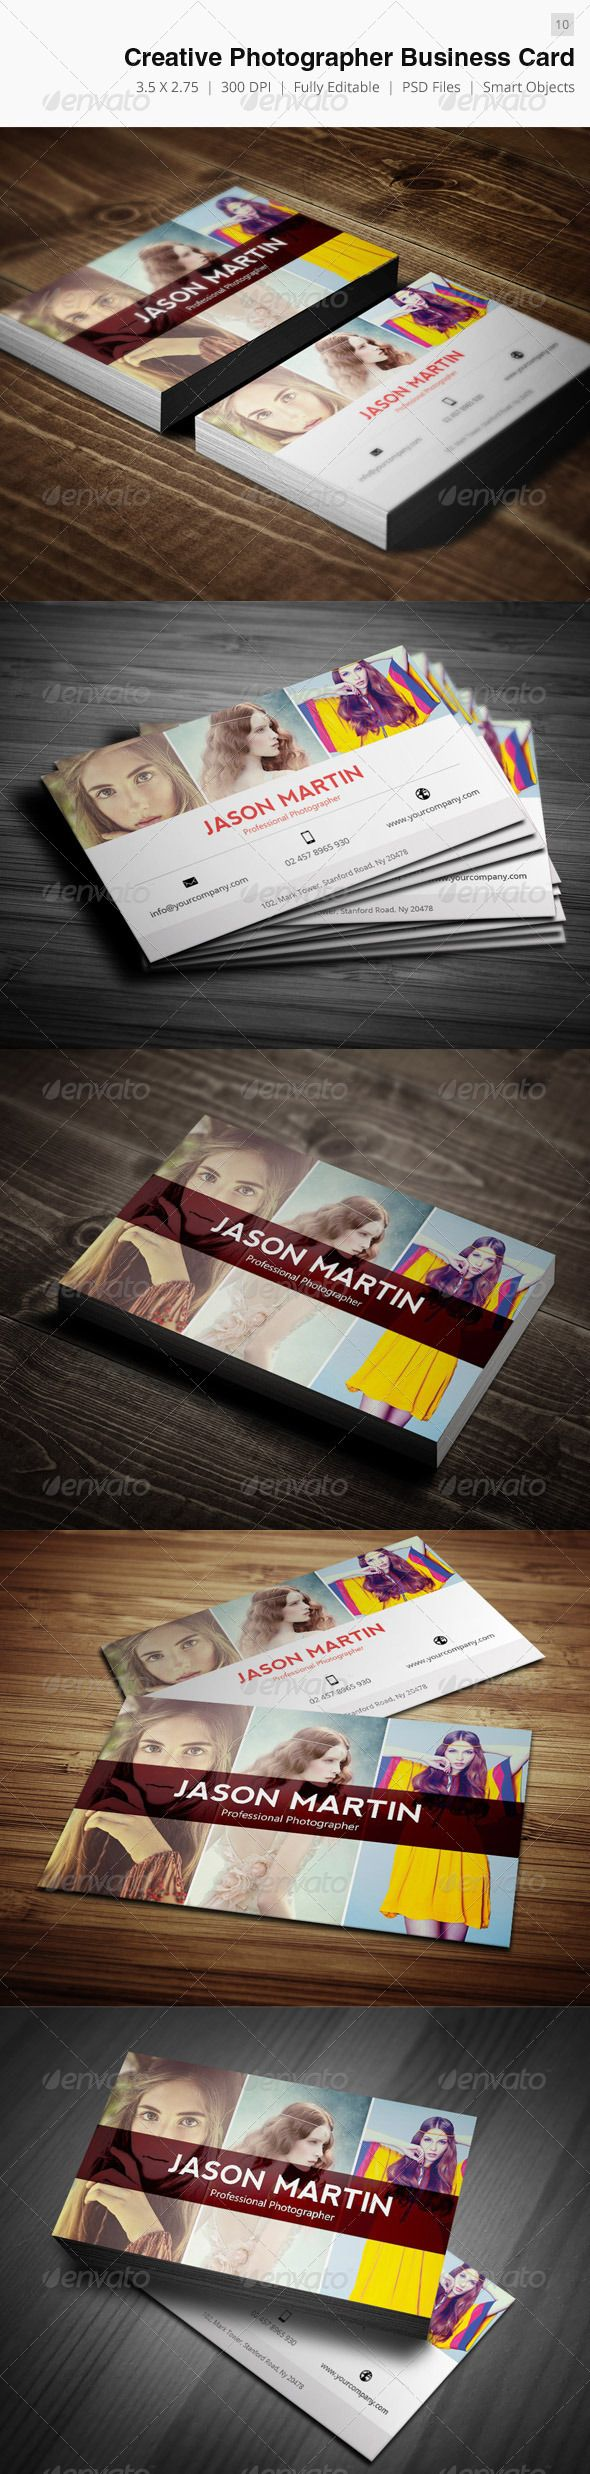 Creative Photographer Business Card - 10 | Photographer business ...